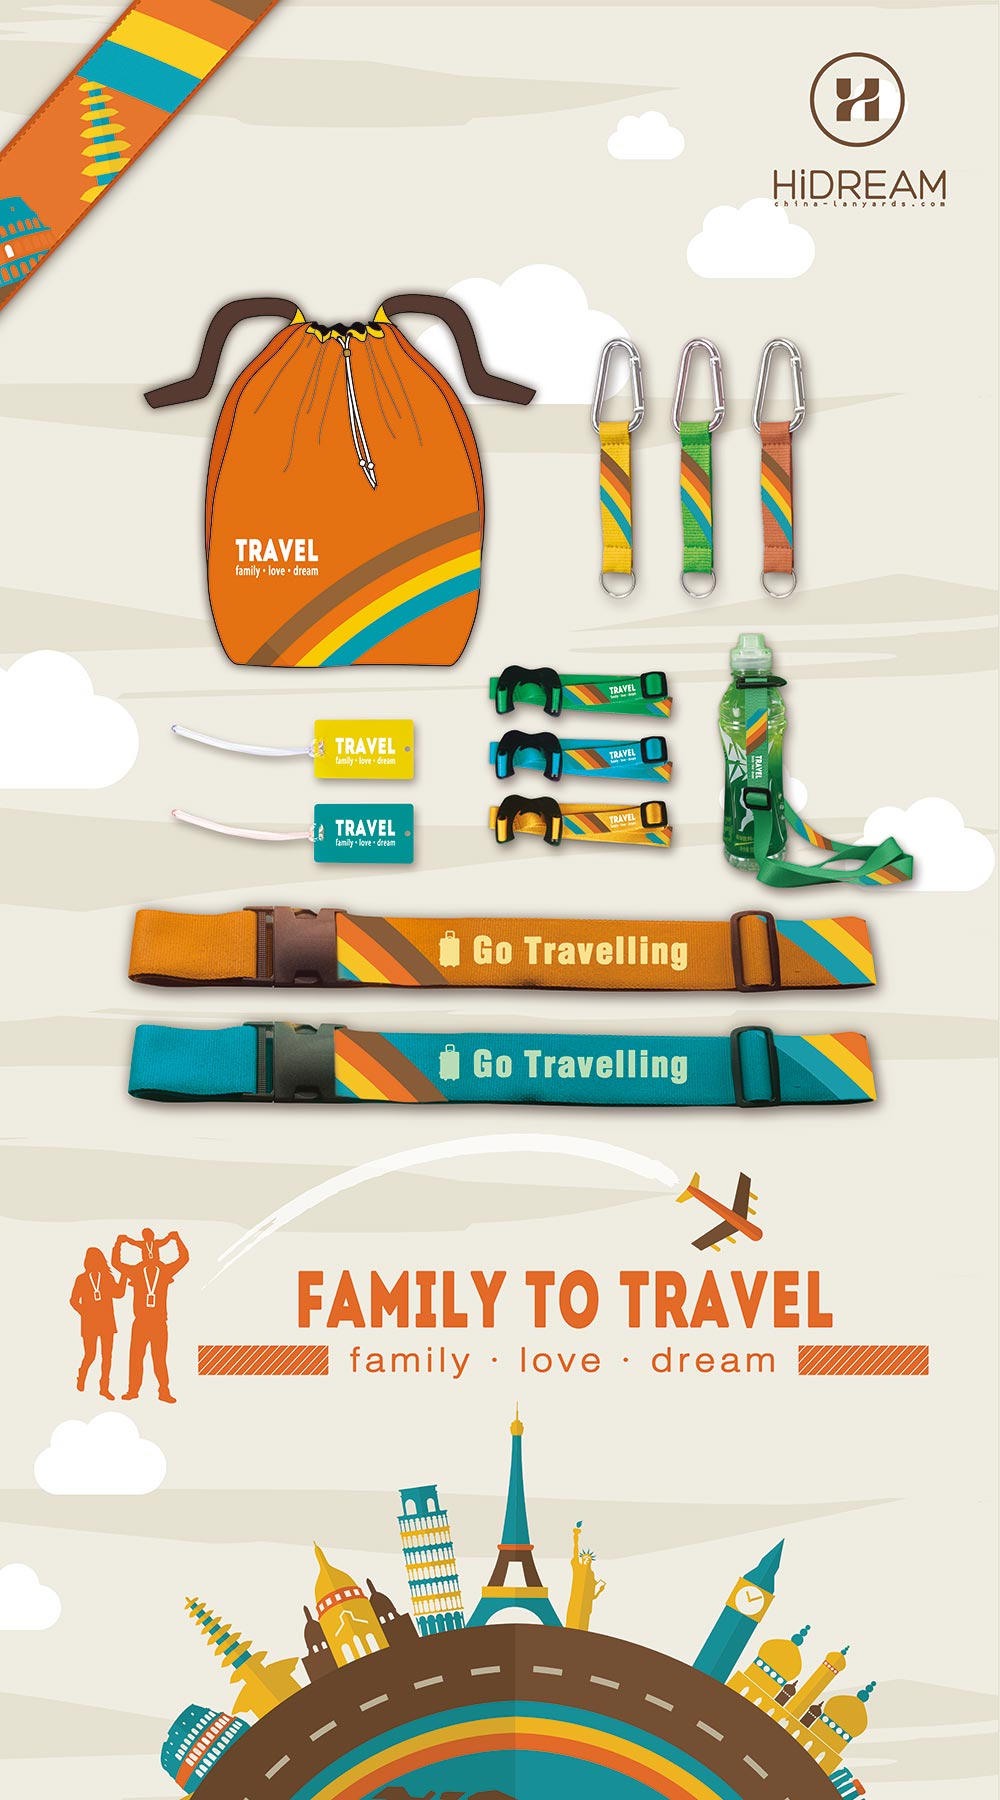 Travel Theme Design